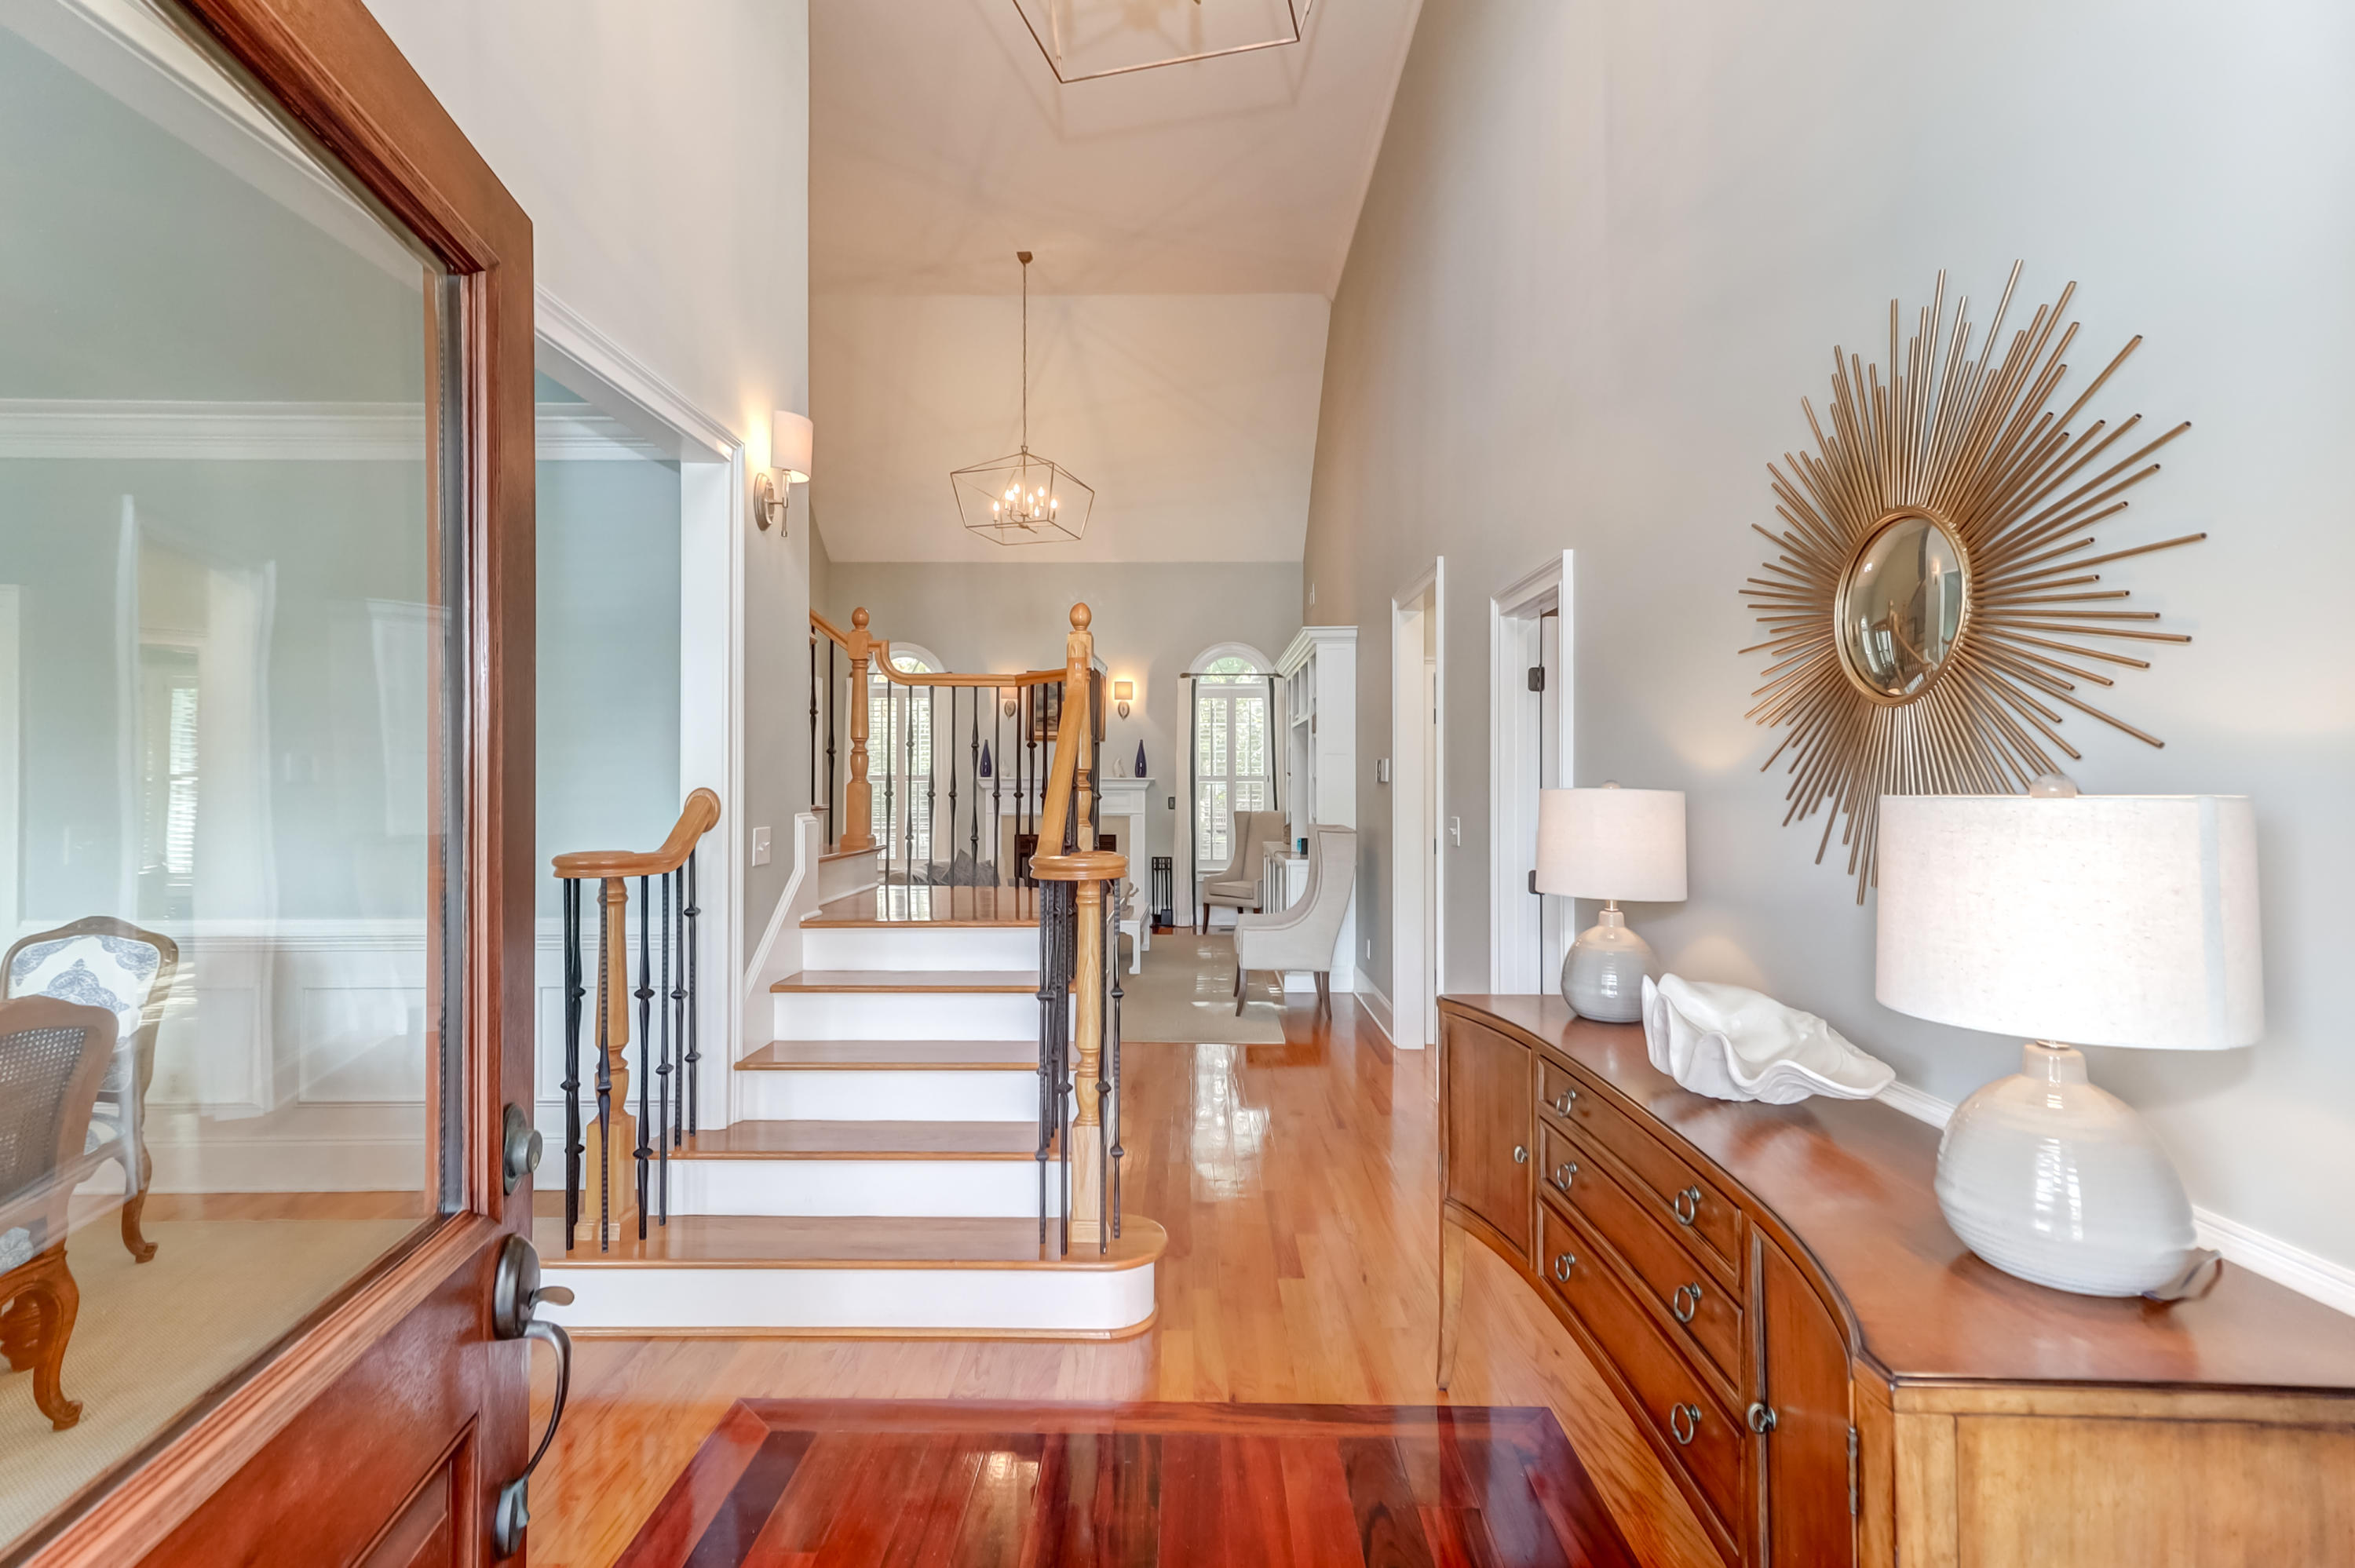 Woodward Pointe Homes For Sale - 657 White Chapel, Charleston, SC - 64